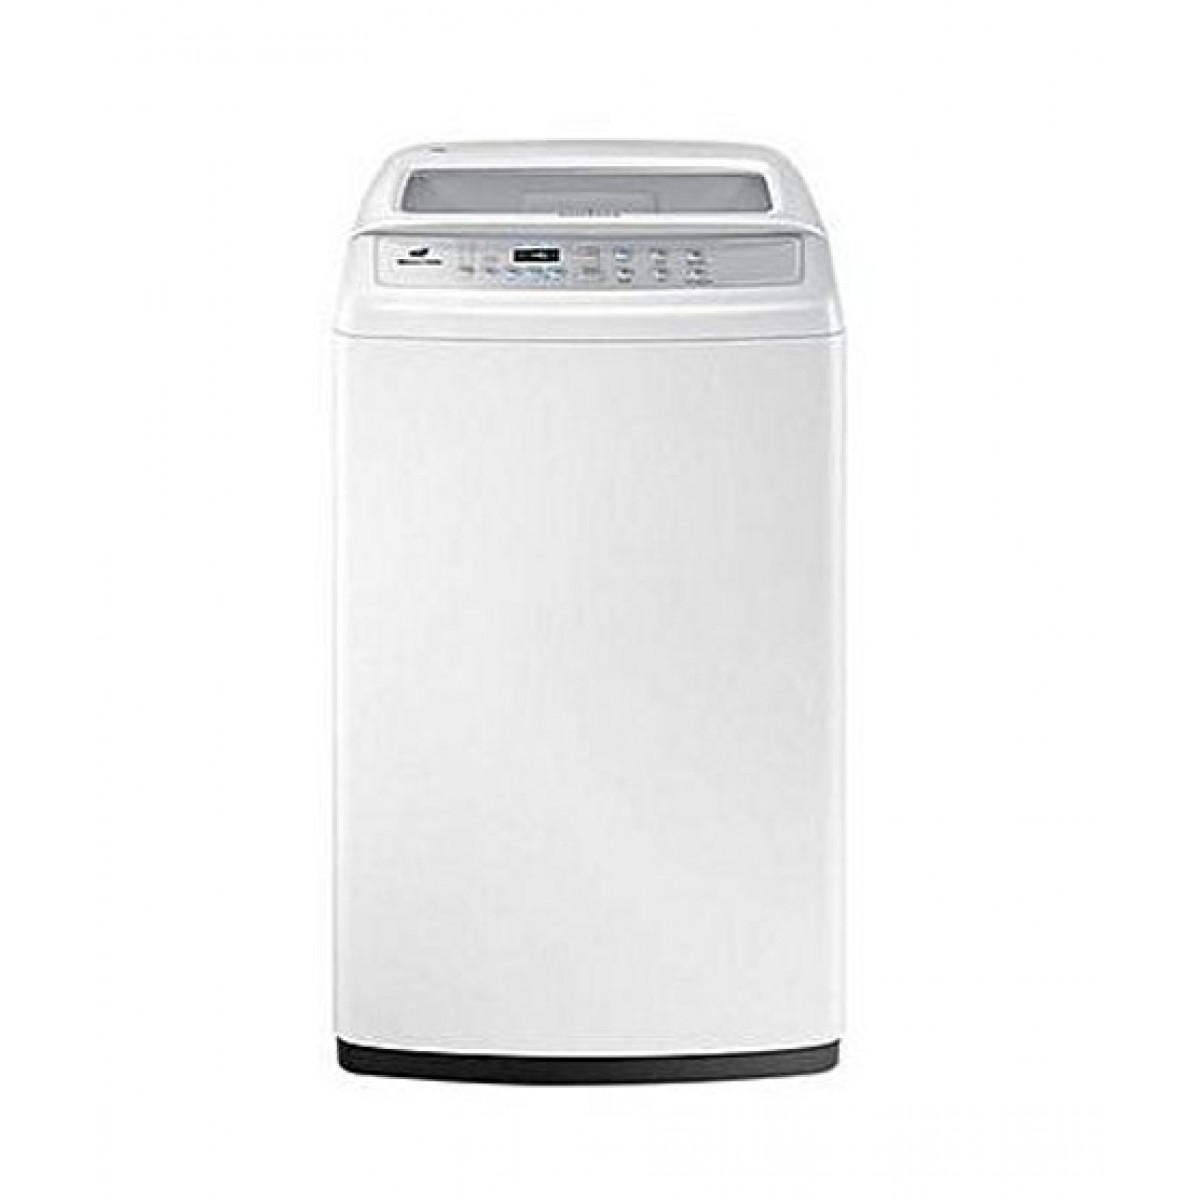 Does Best Buy Sell Washing Machines